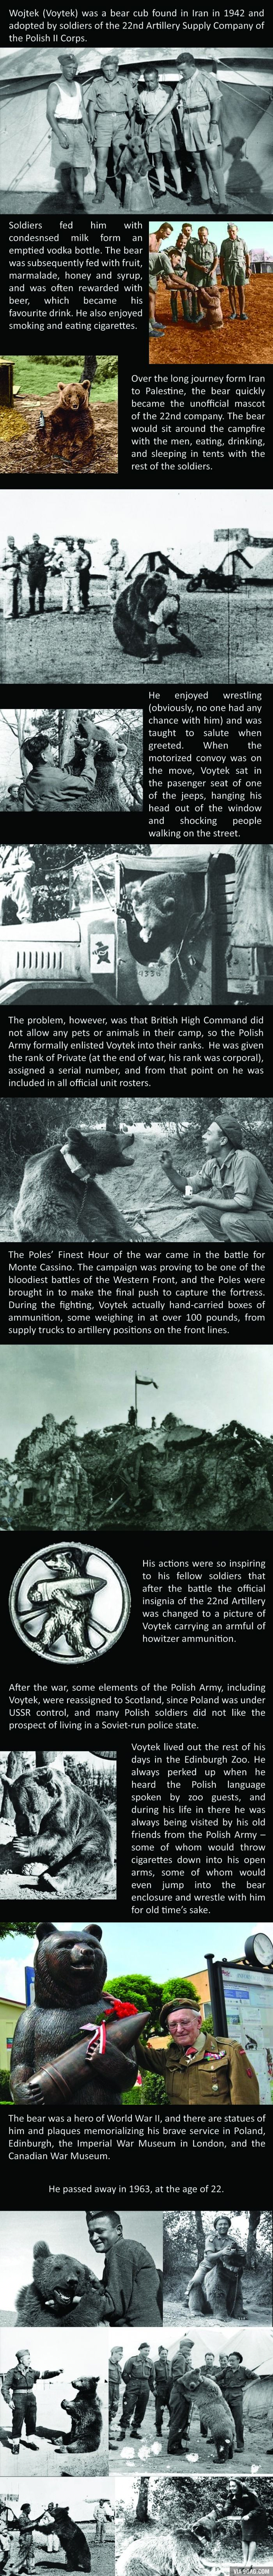 The amazing story of Voytek the Soldier Bear. https://en.wikipedia.org/wiki/Wojtek_(bear)